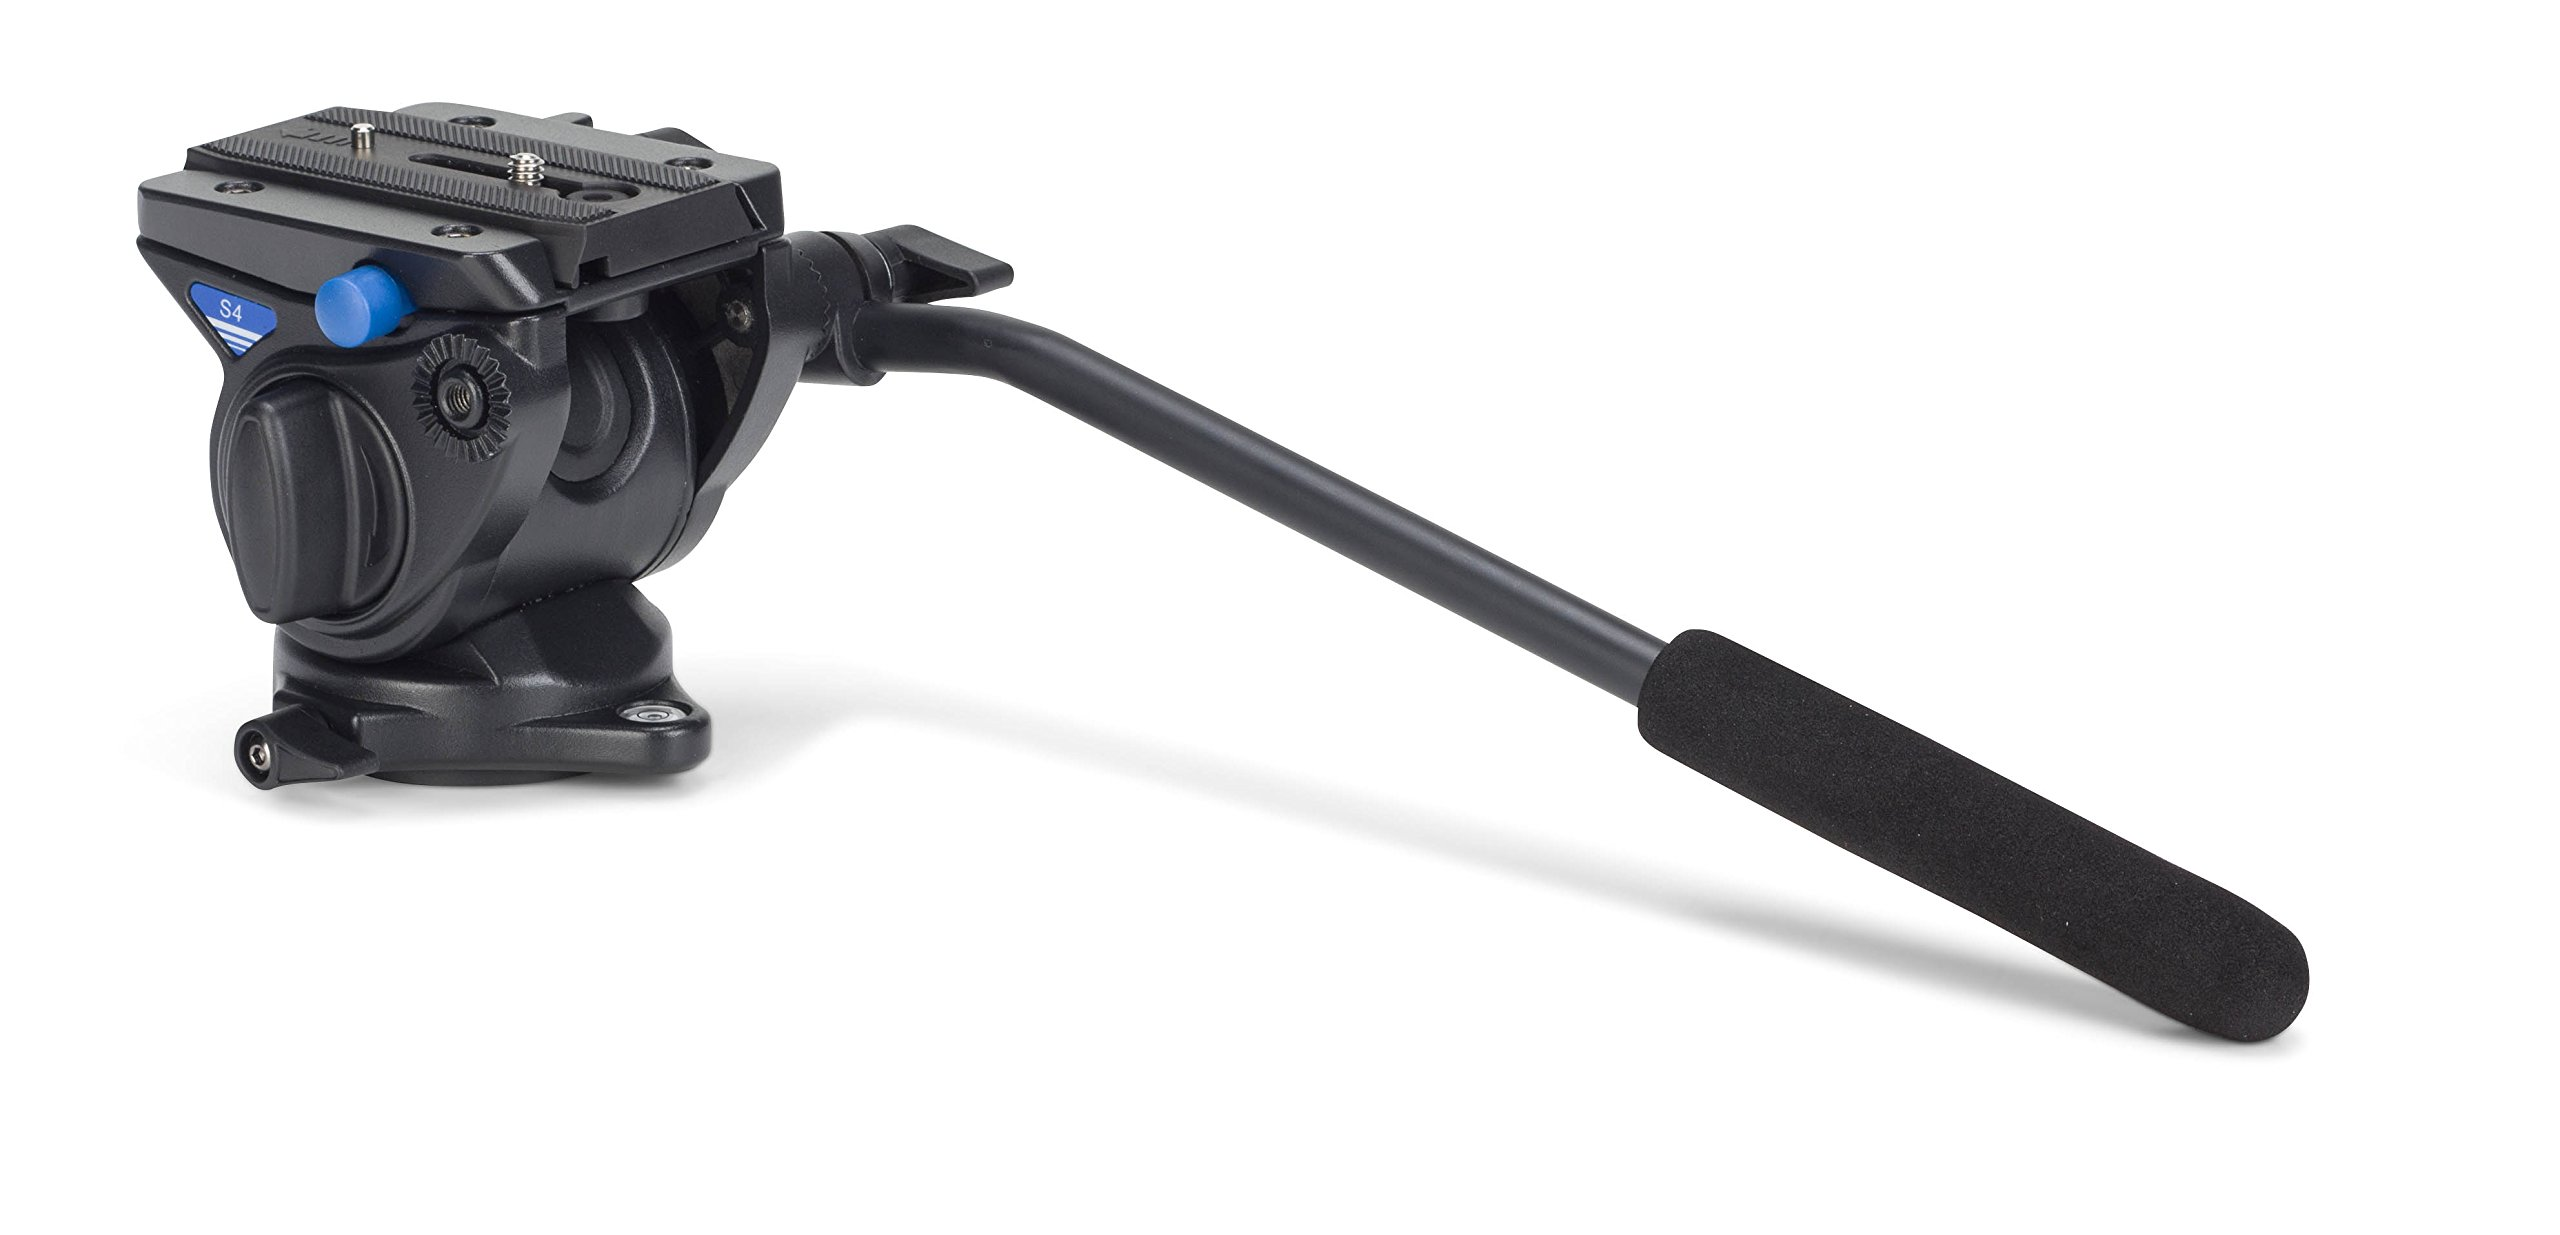 Benro S4 Video Head (Black) by Benro (Image #1)